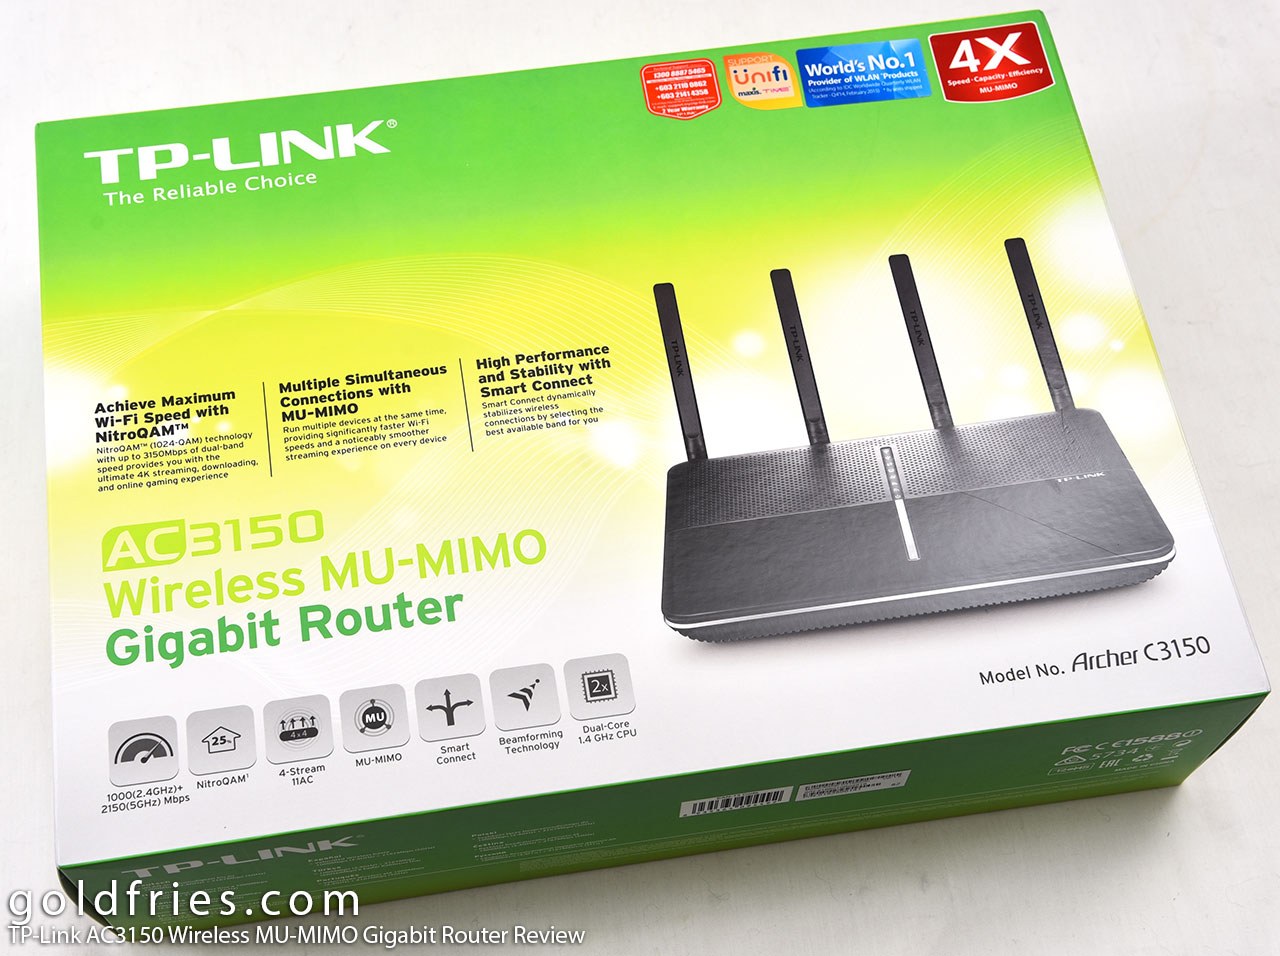 TP-Link AC3150 Wireless MU-MIMO Gigabit Router Review